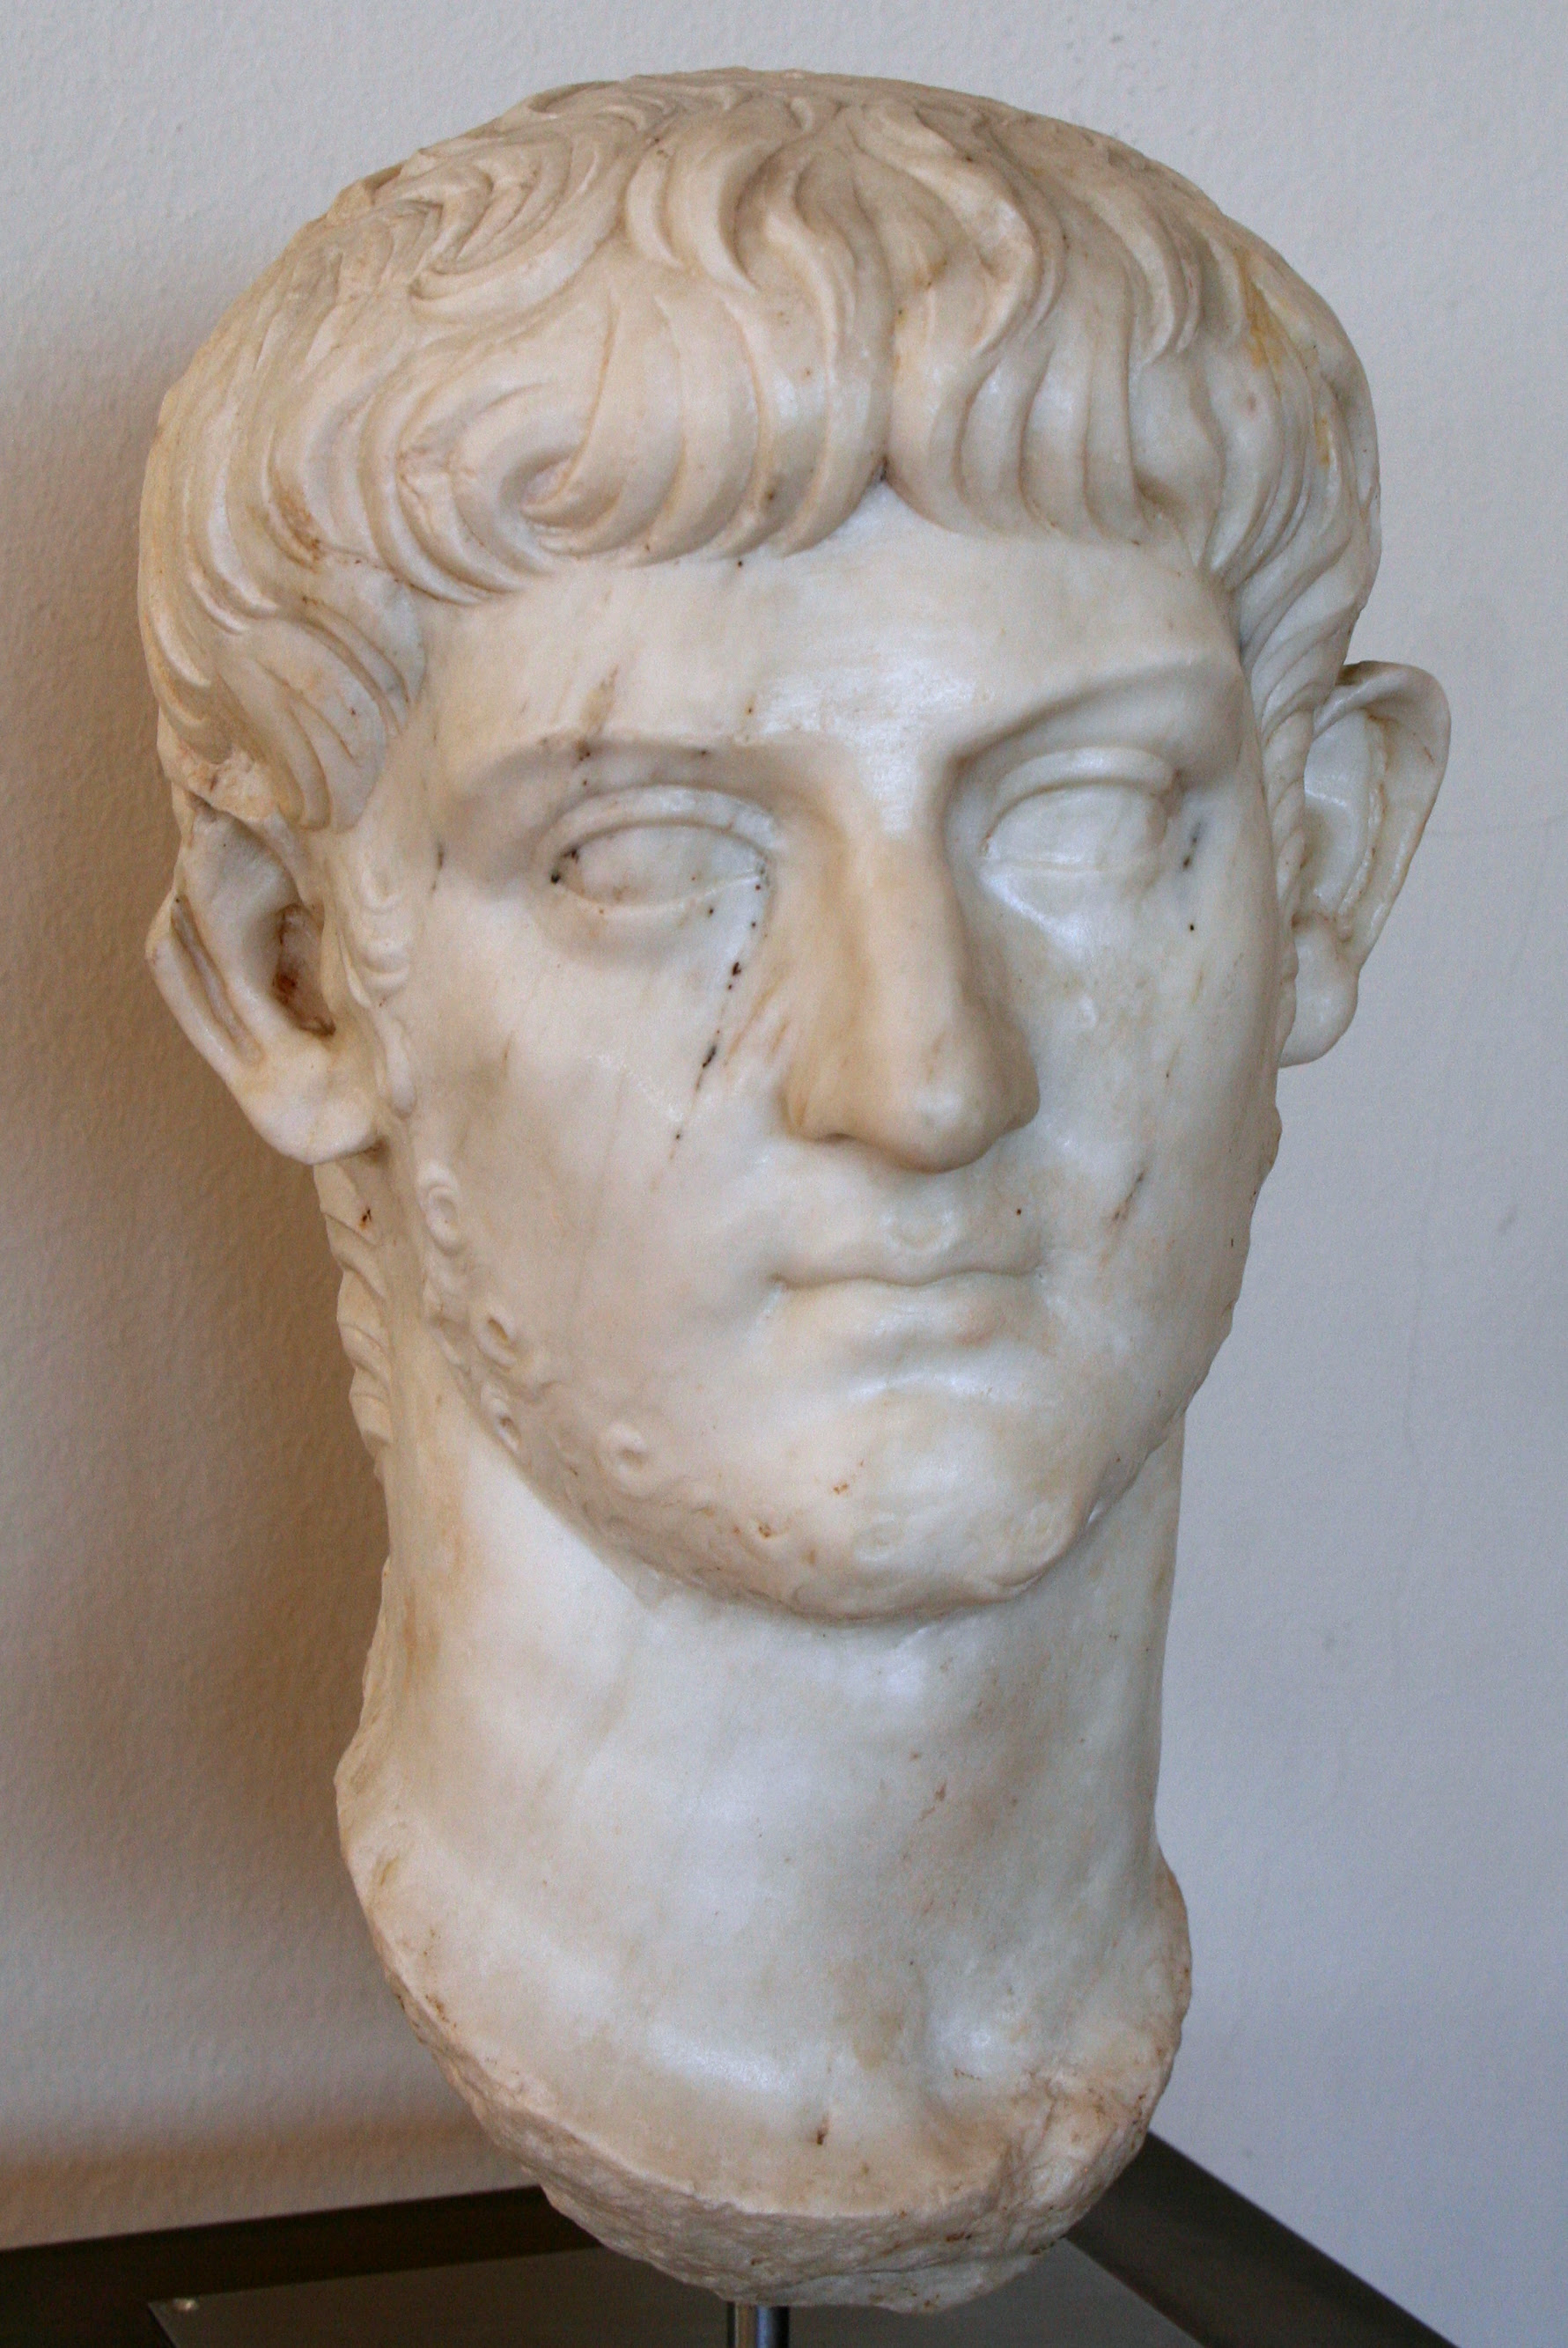 http://upload.wikimedia.org/wikipedia/commons/8/85/Nero_Julius_Caesar.JPG